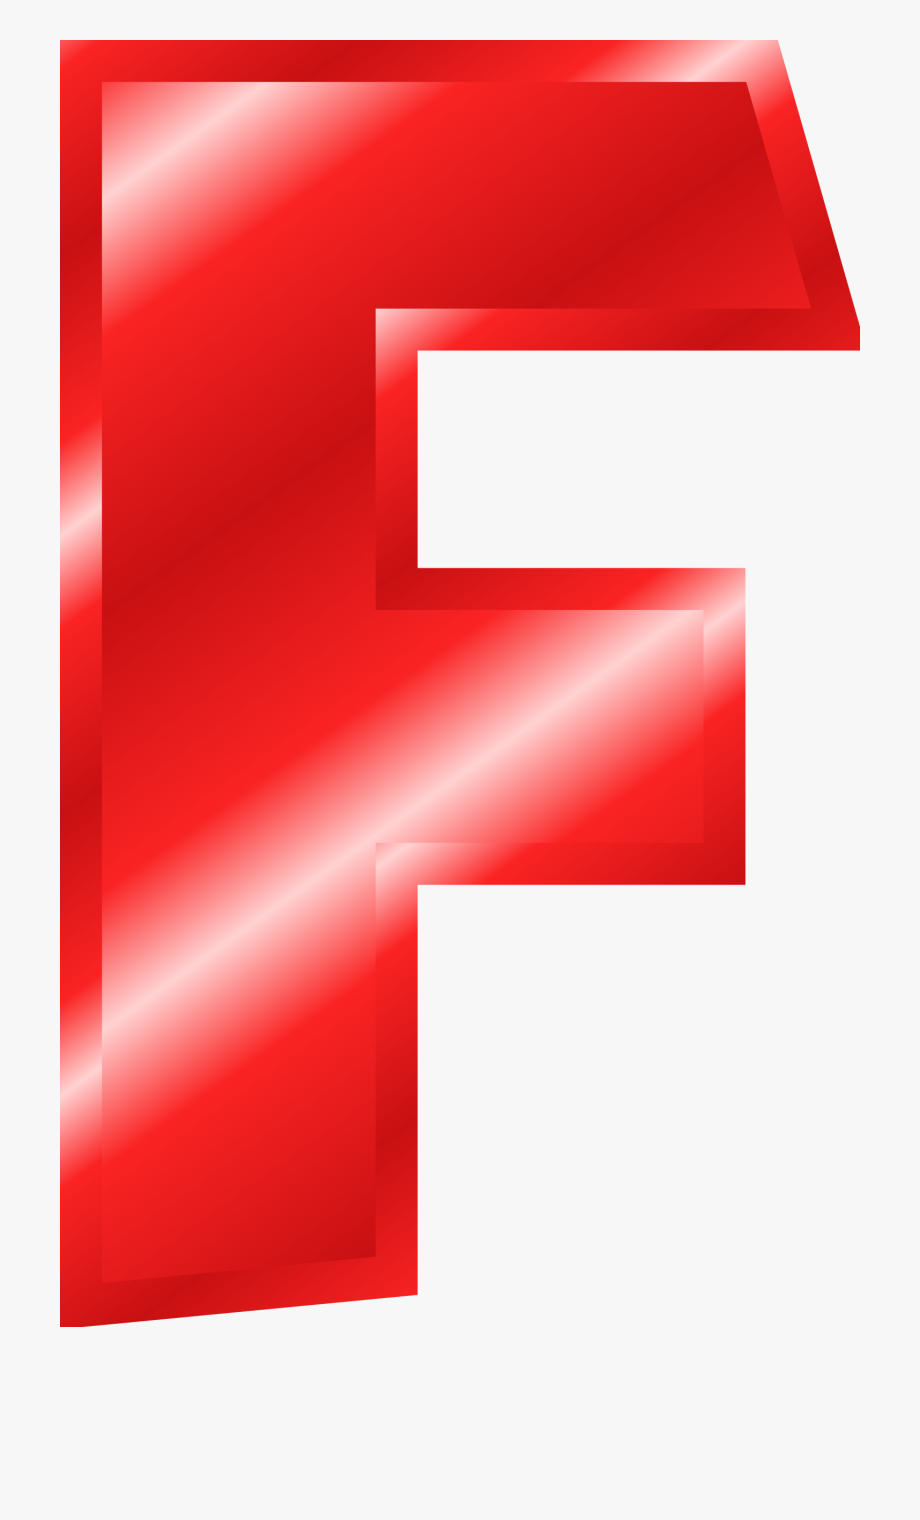 Letter F Red Clipart , Transparent Cartoon, Free Cliparts.